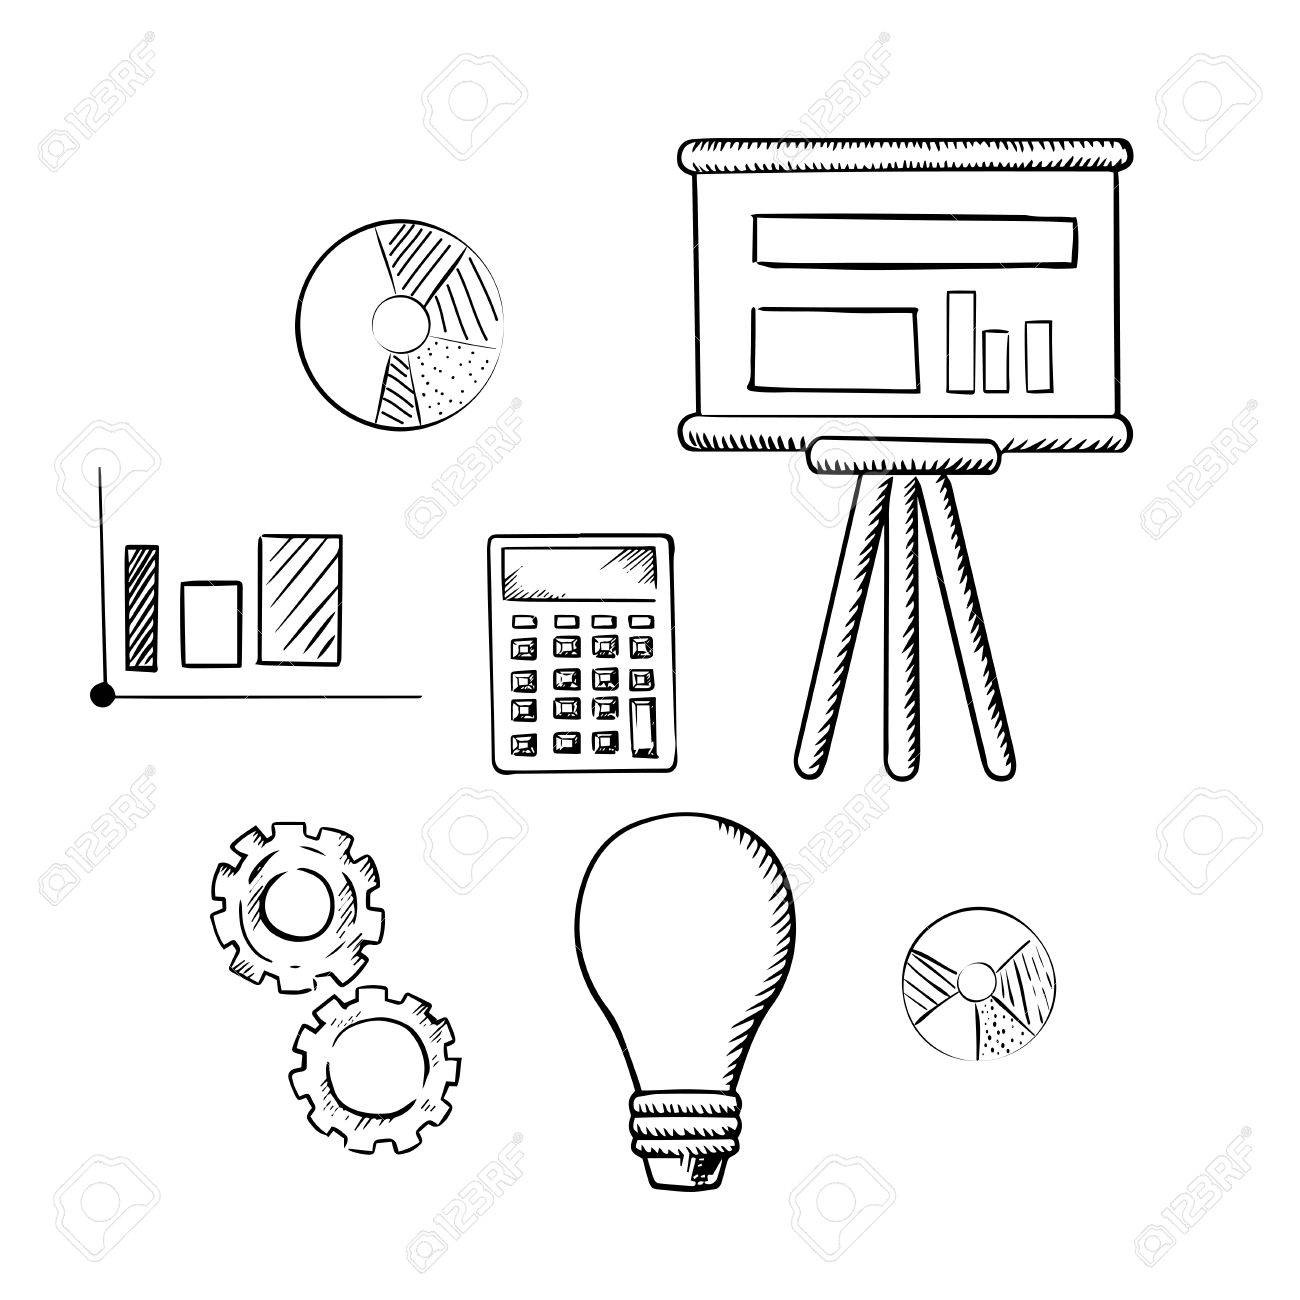 Flip chart with graphs pie charts bar graph calculator idea flip chart with graphs pie charts bar graph calculator idea light bulb ccuart Gallery